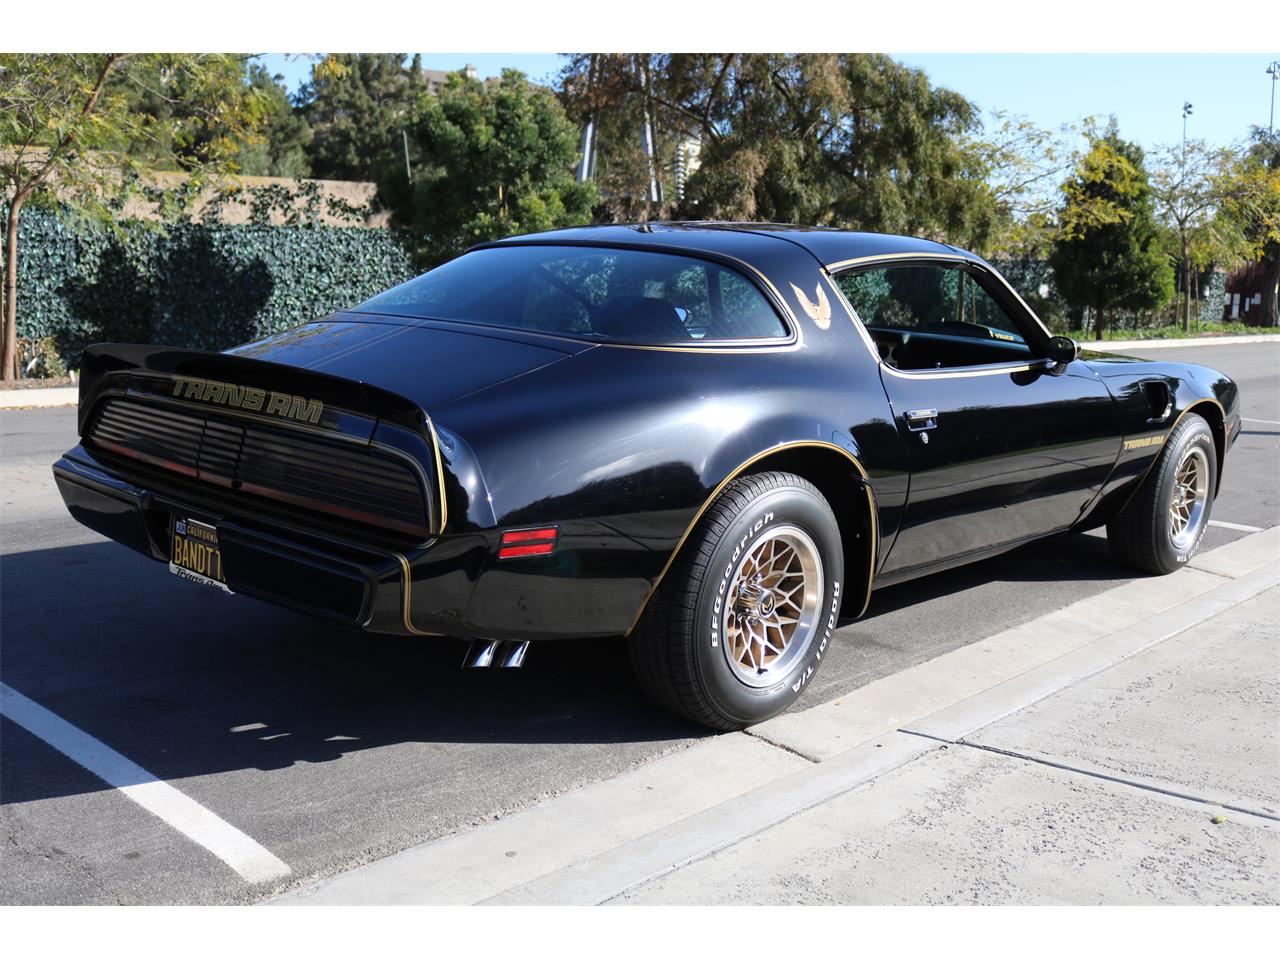 Large Picture of '79 Firebird Trans Am SE located in San Clemente California - $58,000.00 Offered by a Private Seller - N96U